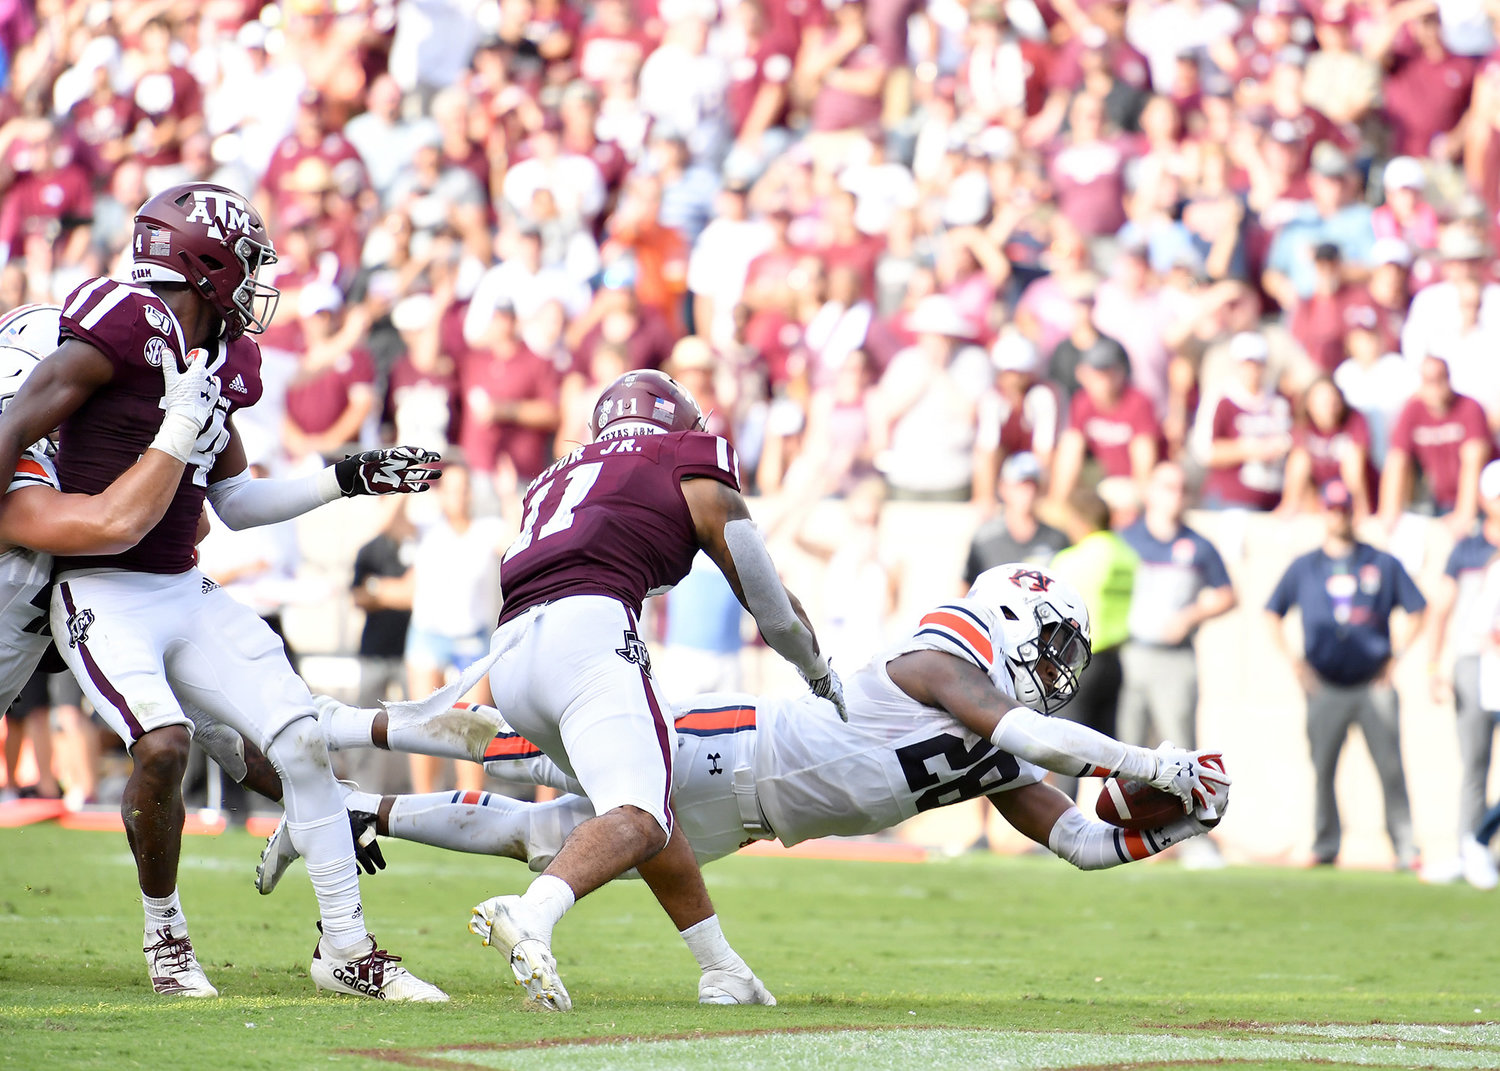 Auburn Tigers running back JaTarvious Whitlow (28) dives for the endzone and the fourth touchdown of the day during the second half of an NCAA football game against the Texas A&M Aggies Saturday, Sept. 21, 2019, at Kyle Field in College Station Texas. Auburn wins 28-20.